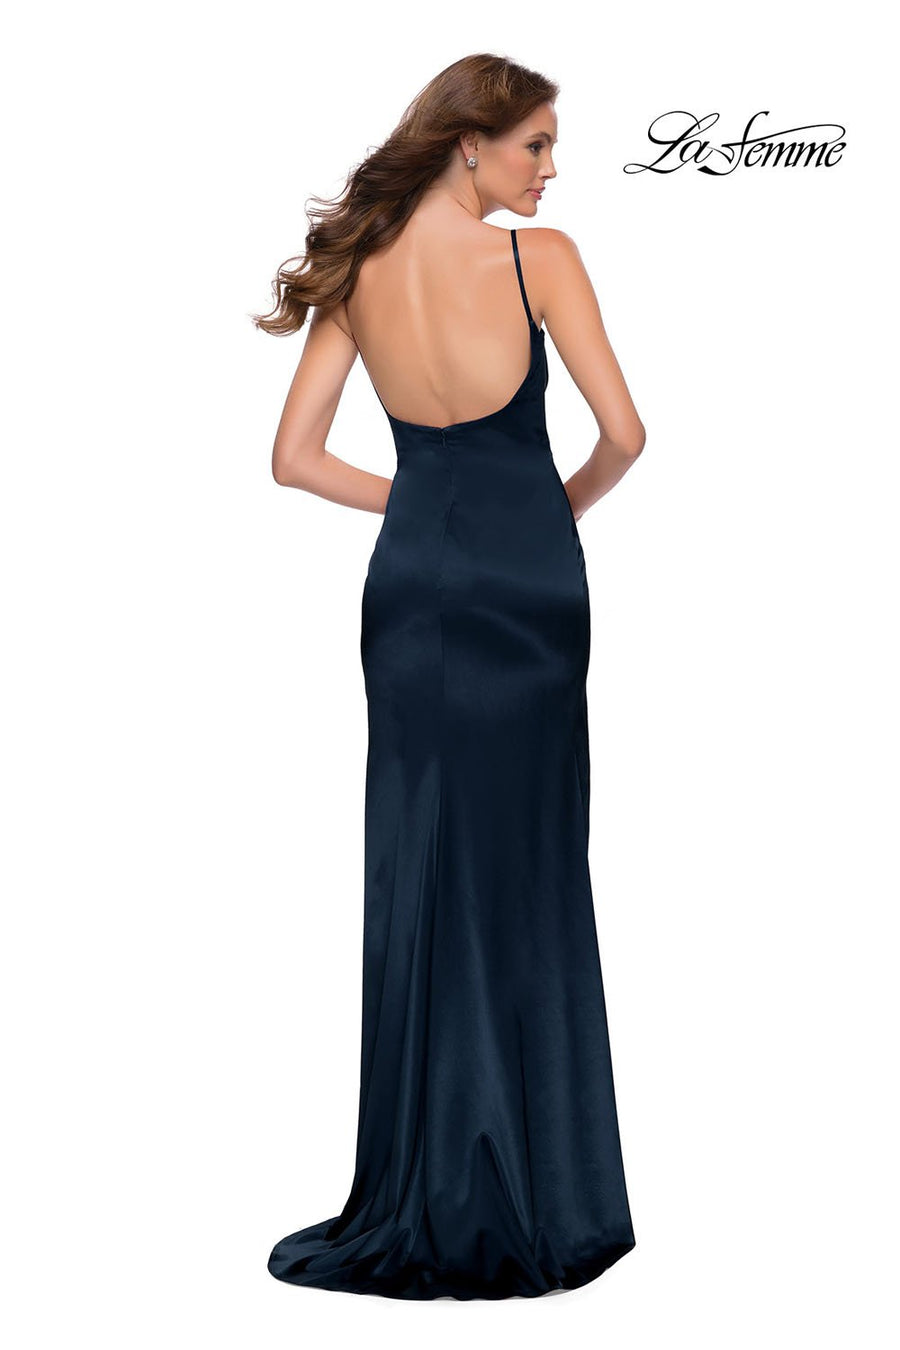 La Femme 29945 prom dress images.  La Femme 29945 is available in these colors: Burgundy, Navy, White.